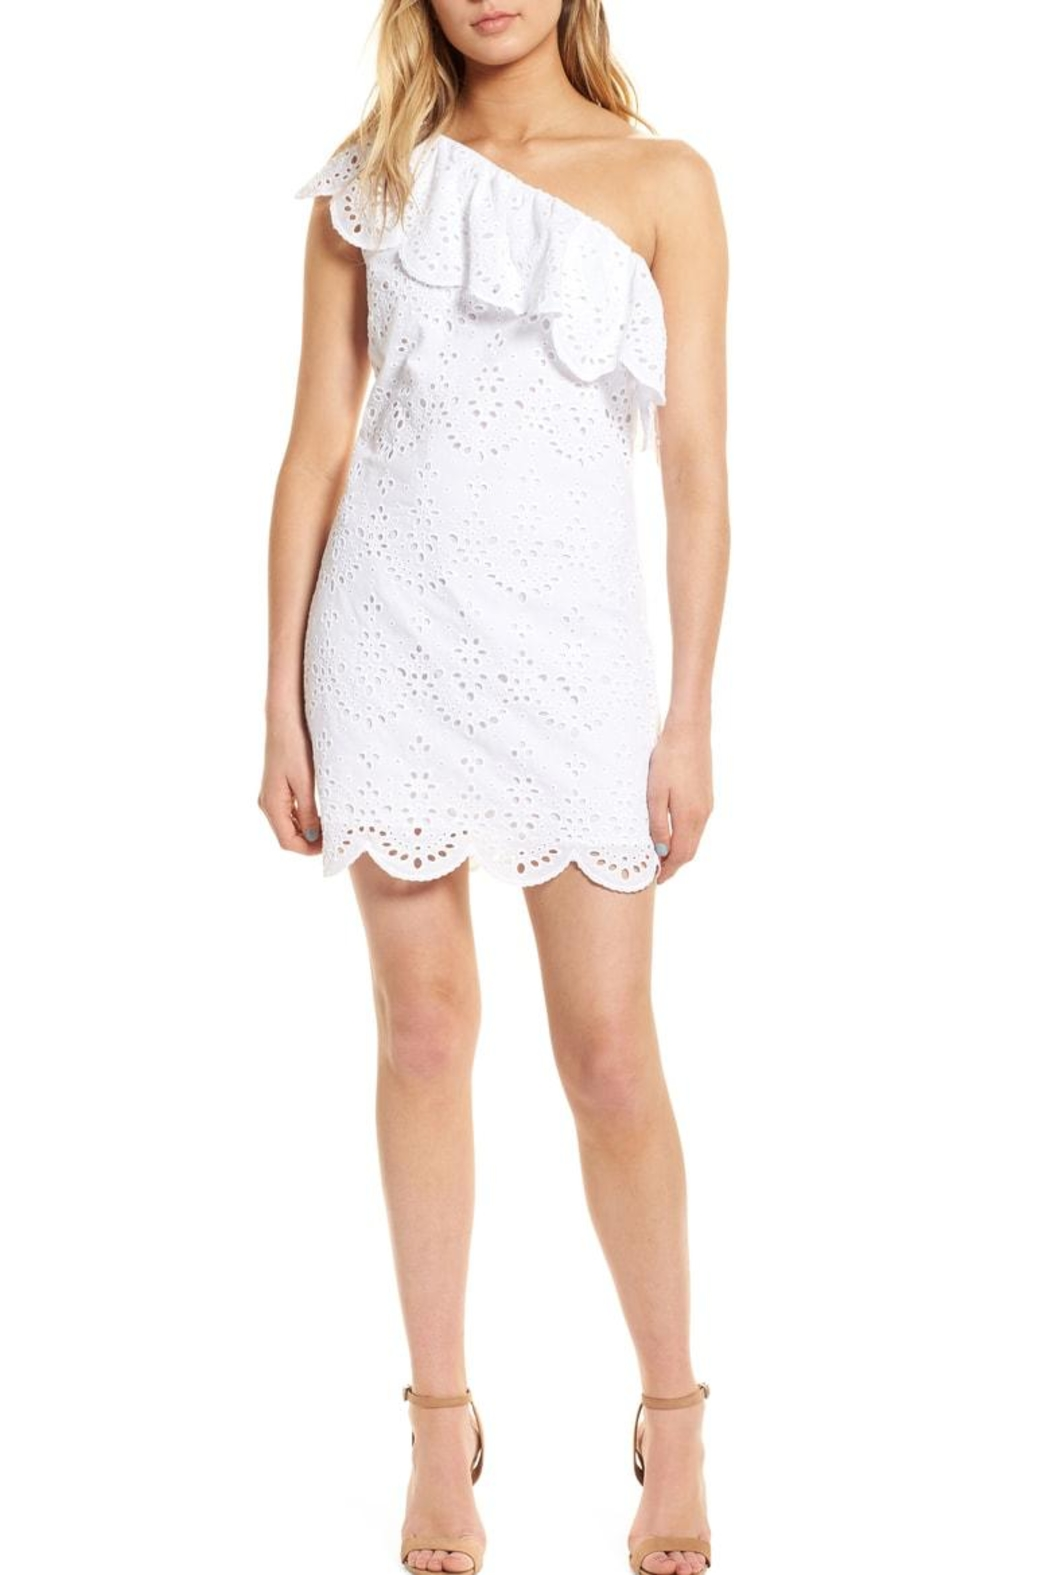 Cupcakes and Cashmere Cosmo Eyelet Dress - Main Image